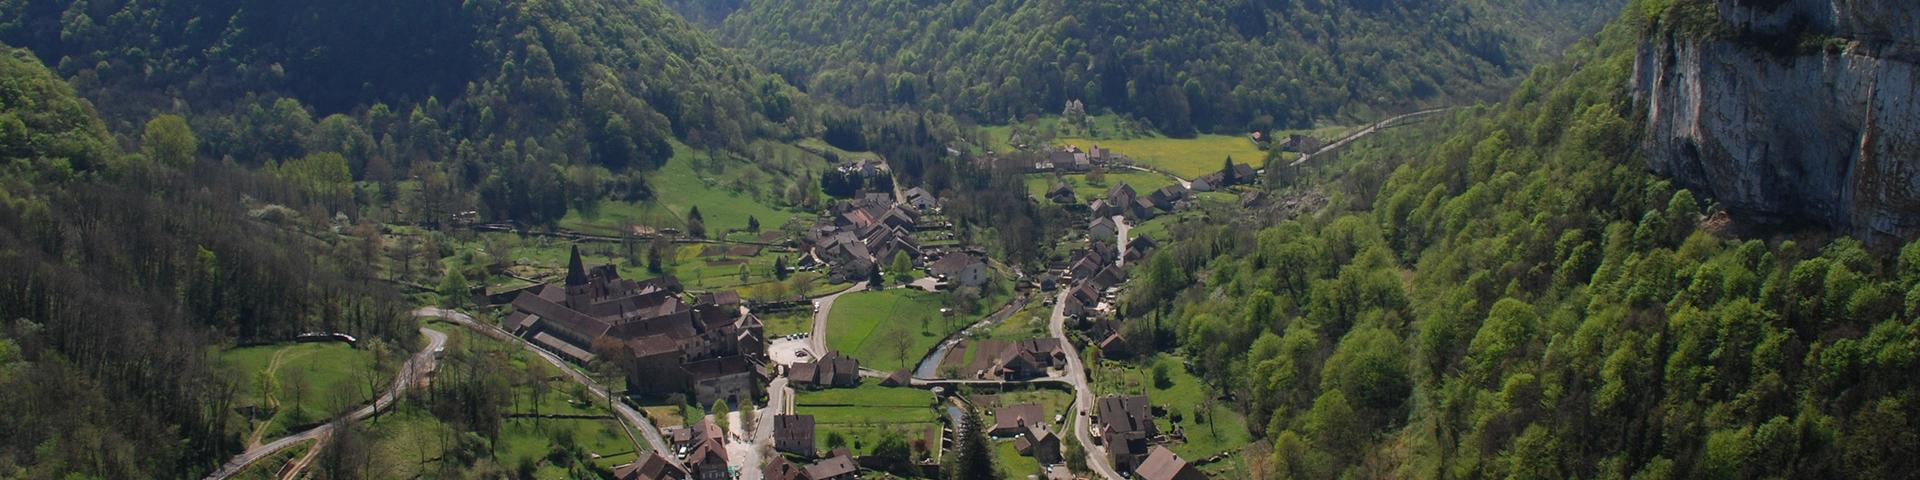 The village of Baume-les-Messieurs, Jura